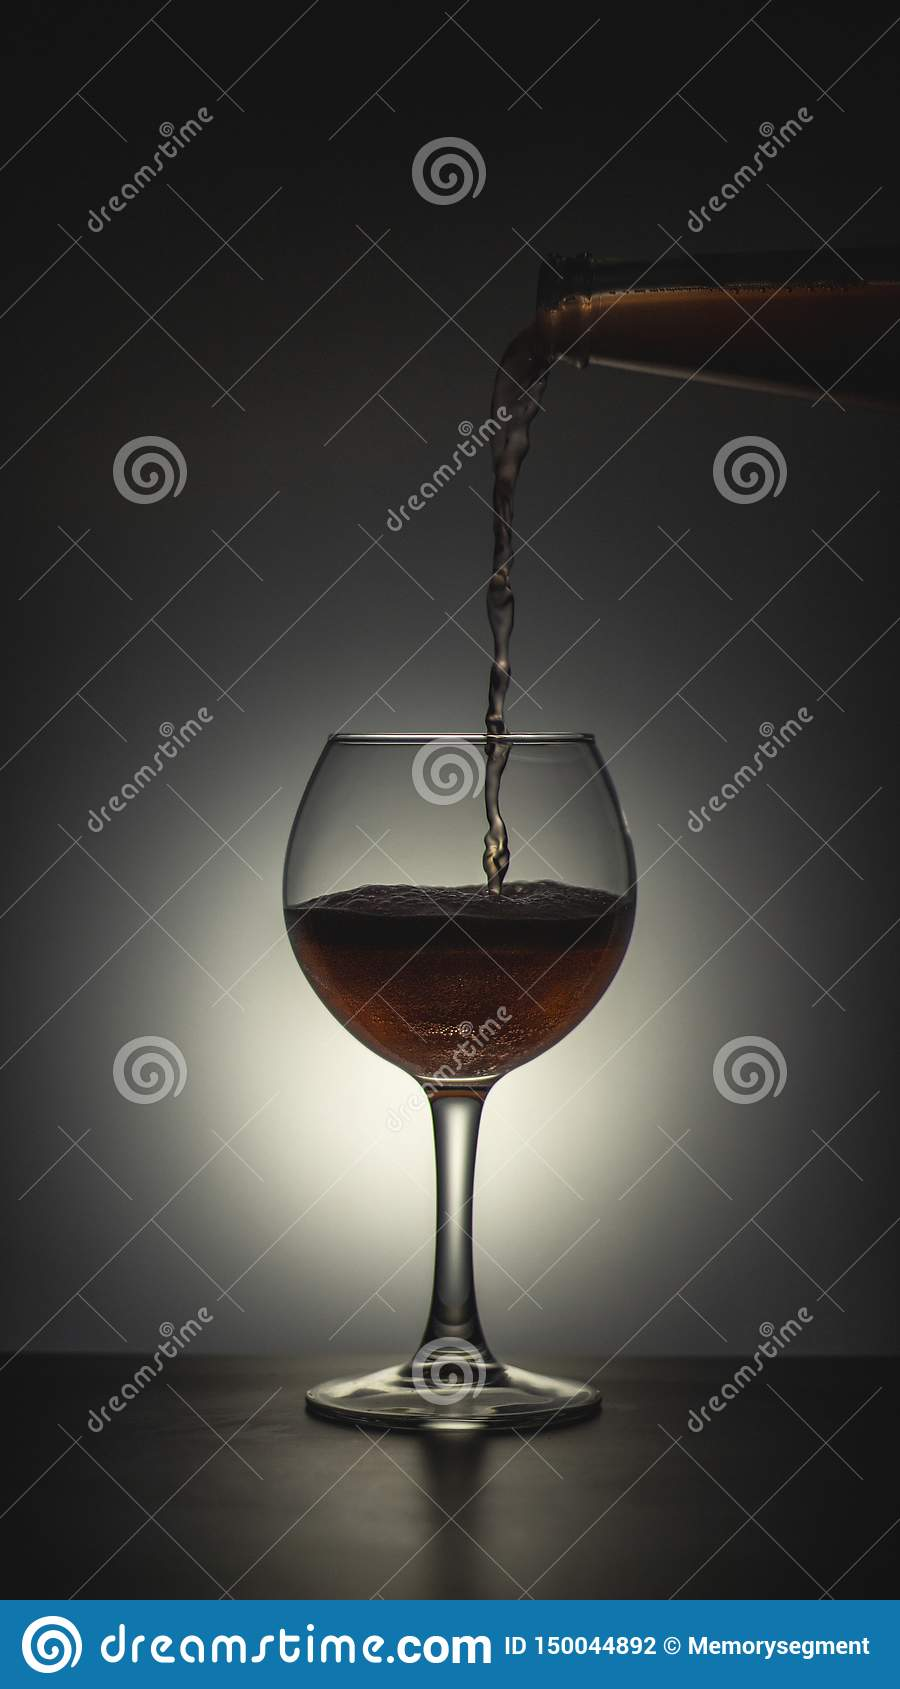 A glass that poured alcohol on a dark background